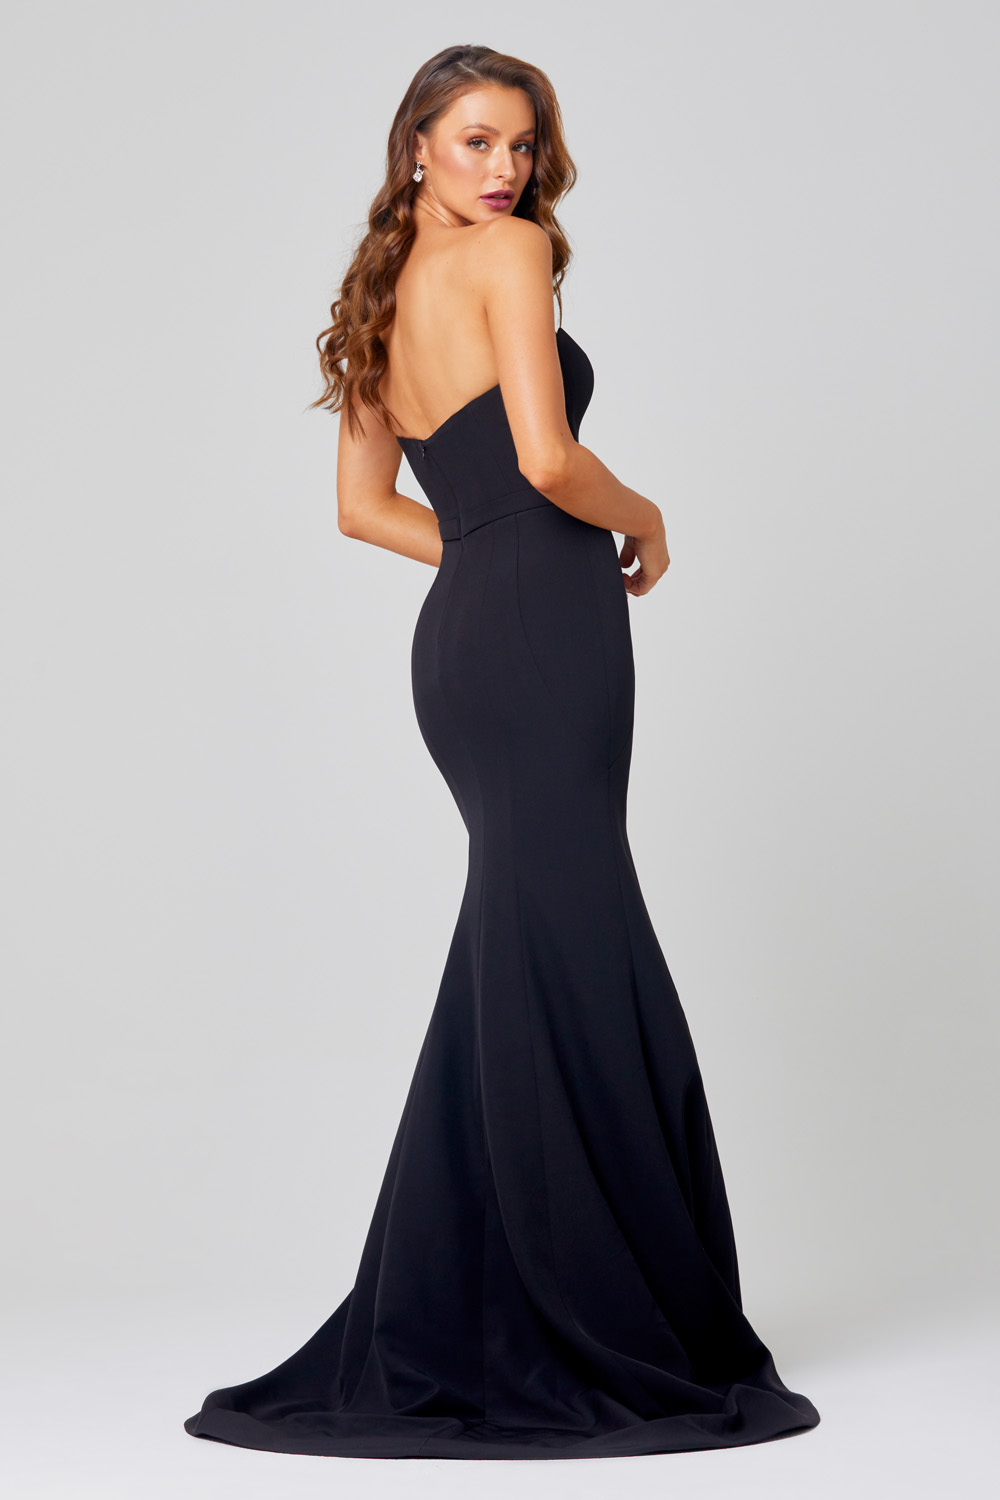 Lacie Strapless Mermaid Evening Dress - PO886 Back